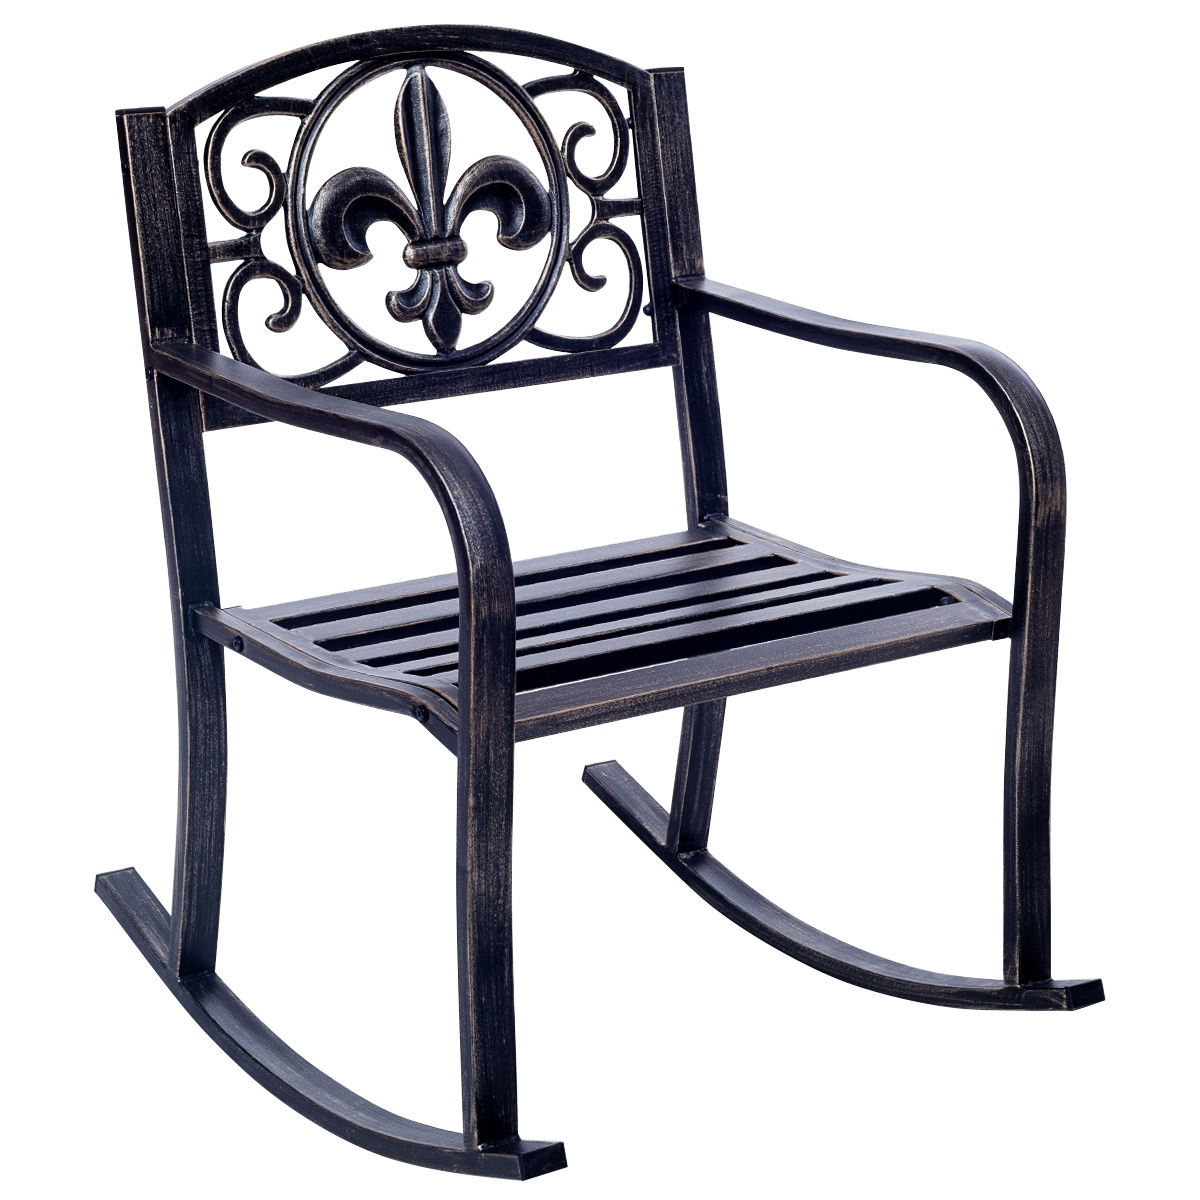 Well Known Patio Metal Rocking Chairs Within Costway: Costway Patio Metal Rocking Chair Porch Seat Deck Outdoor (View 11 of 15)